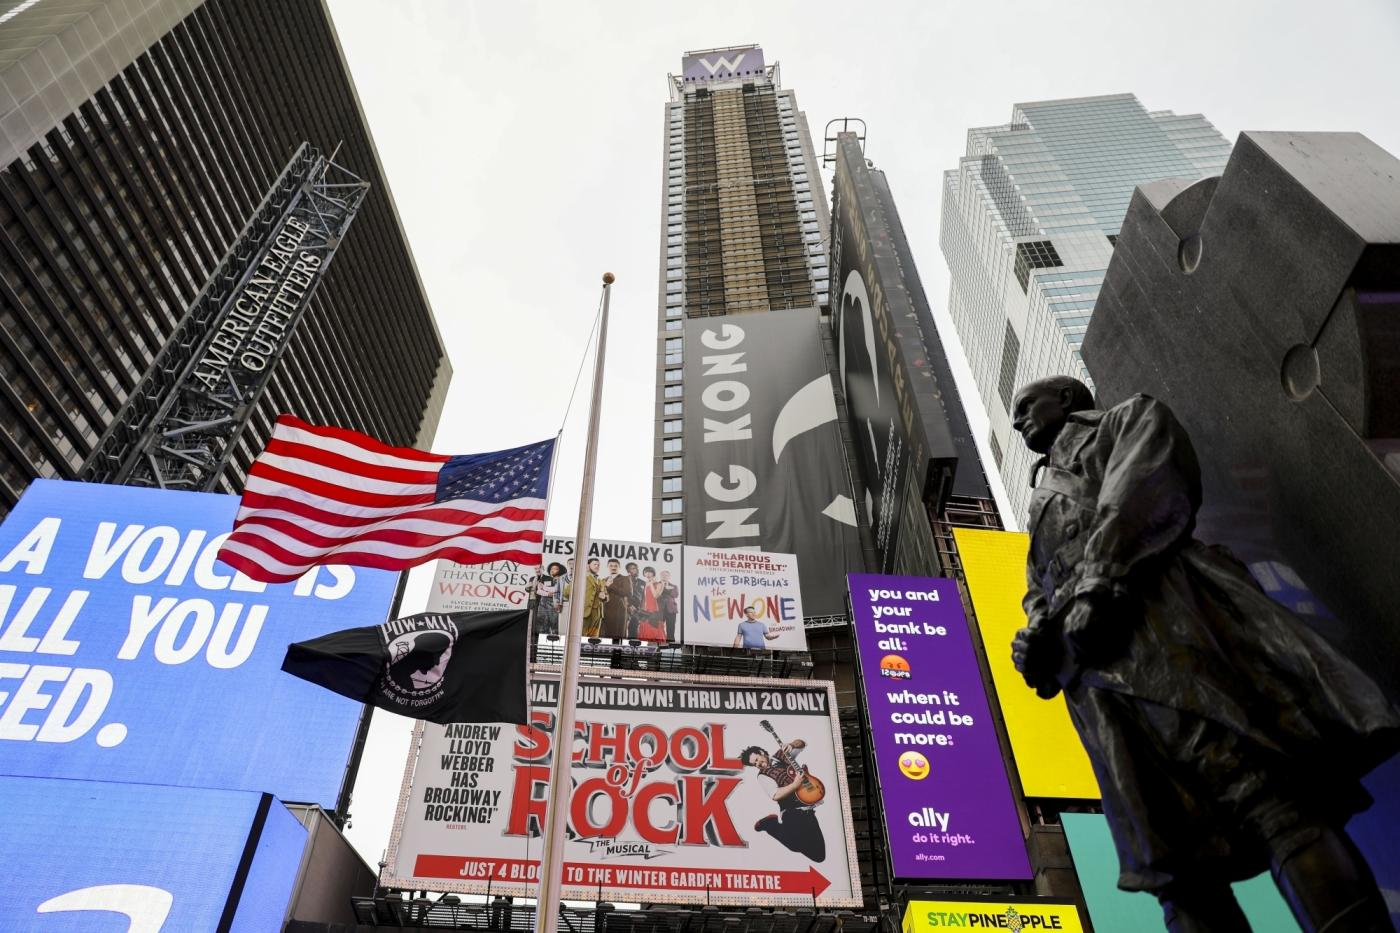 NEW YORK, Dec. 5, 2018 (Xinhua) -- The U.S. national flag is seen at half mast at Times Square in New York, the United States, on Dec. 5, 2018. A state funeral was held on Wednesday for the the 41st U.S. President George H.W. Bush. (Xinhua/Wang Ying/IANS) by .